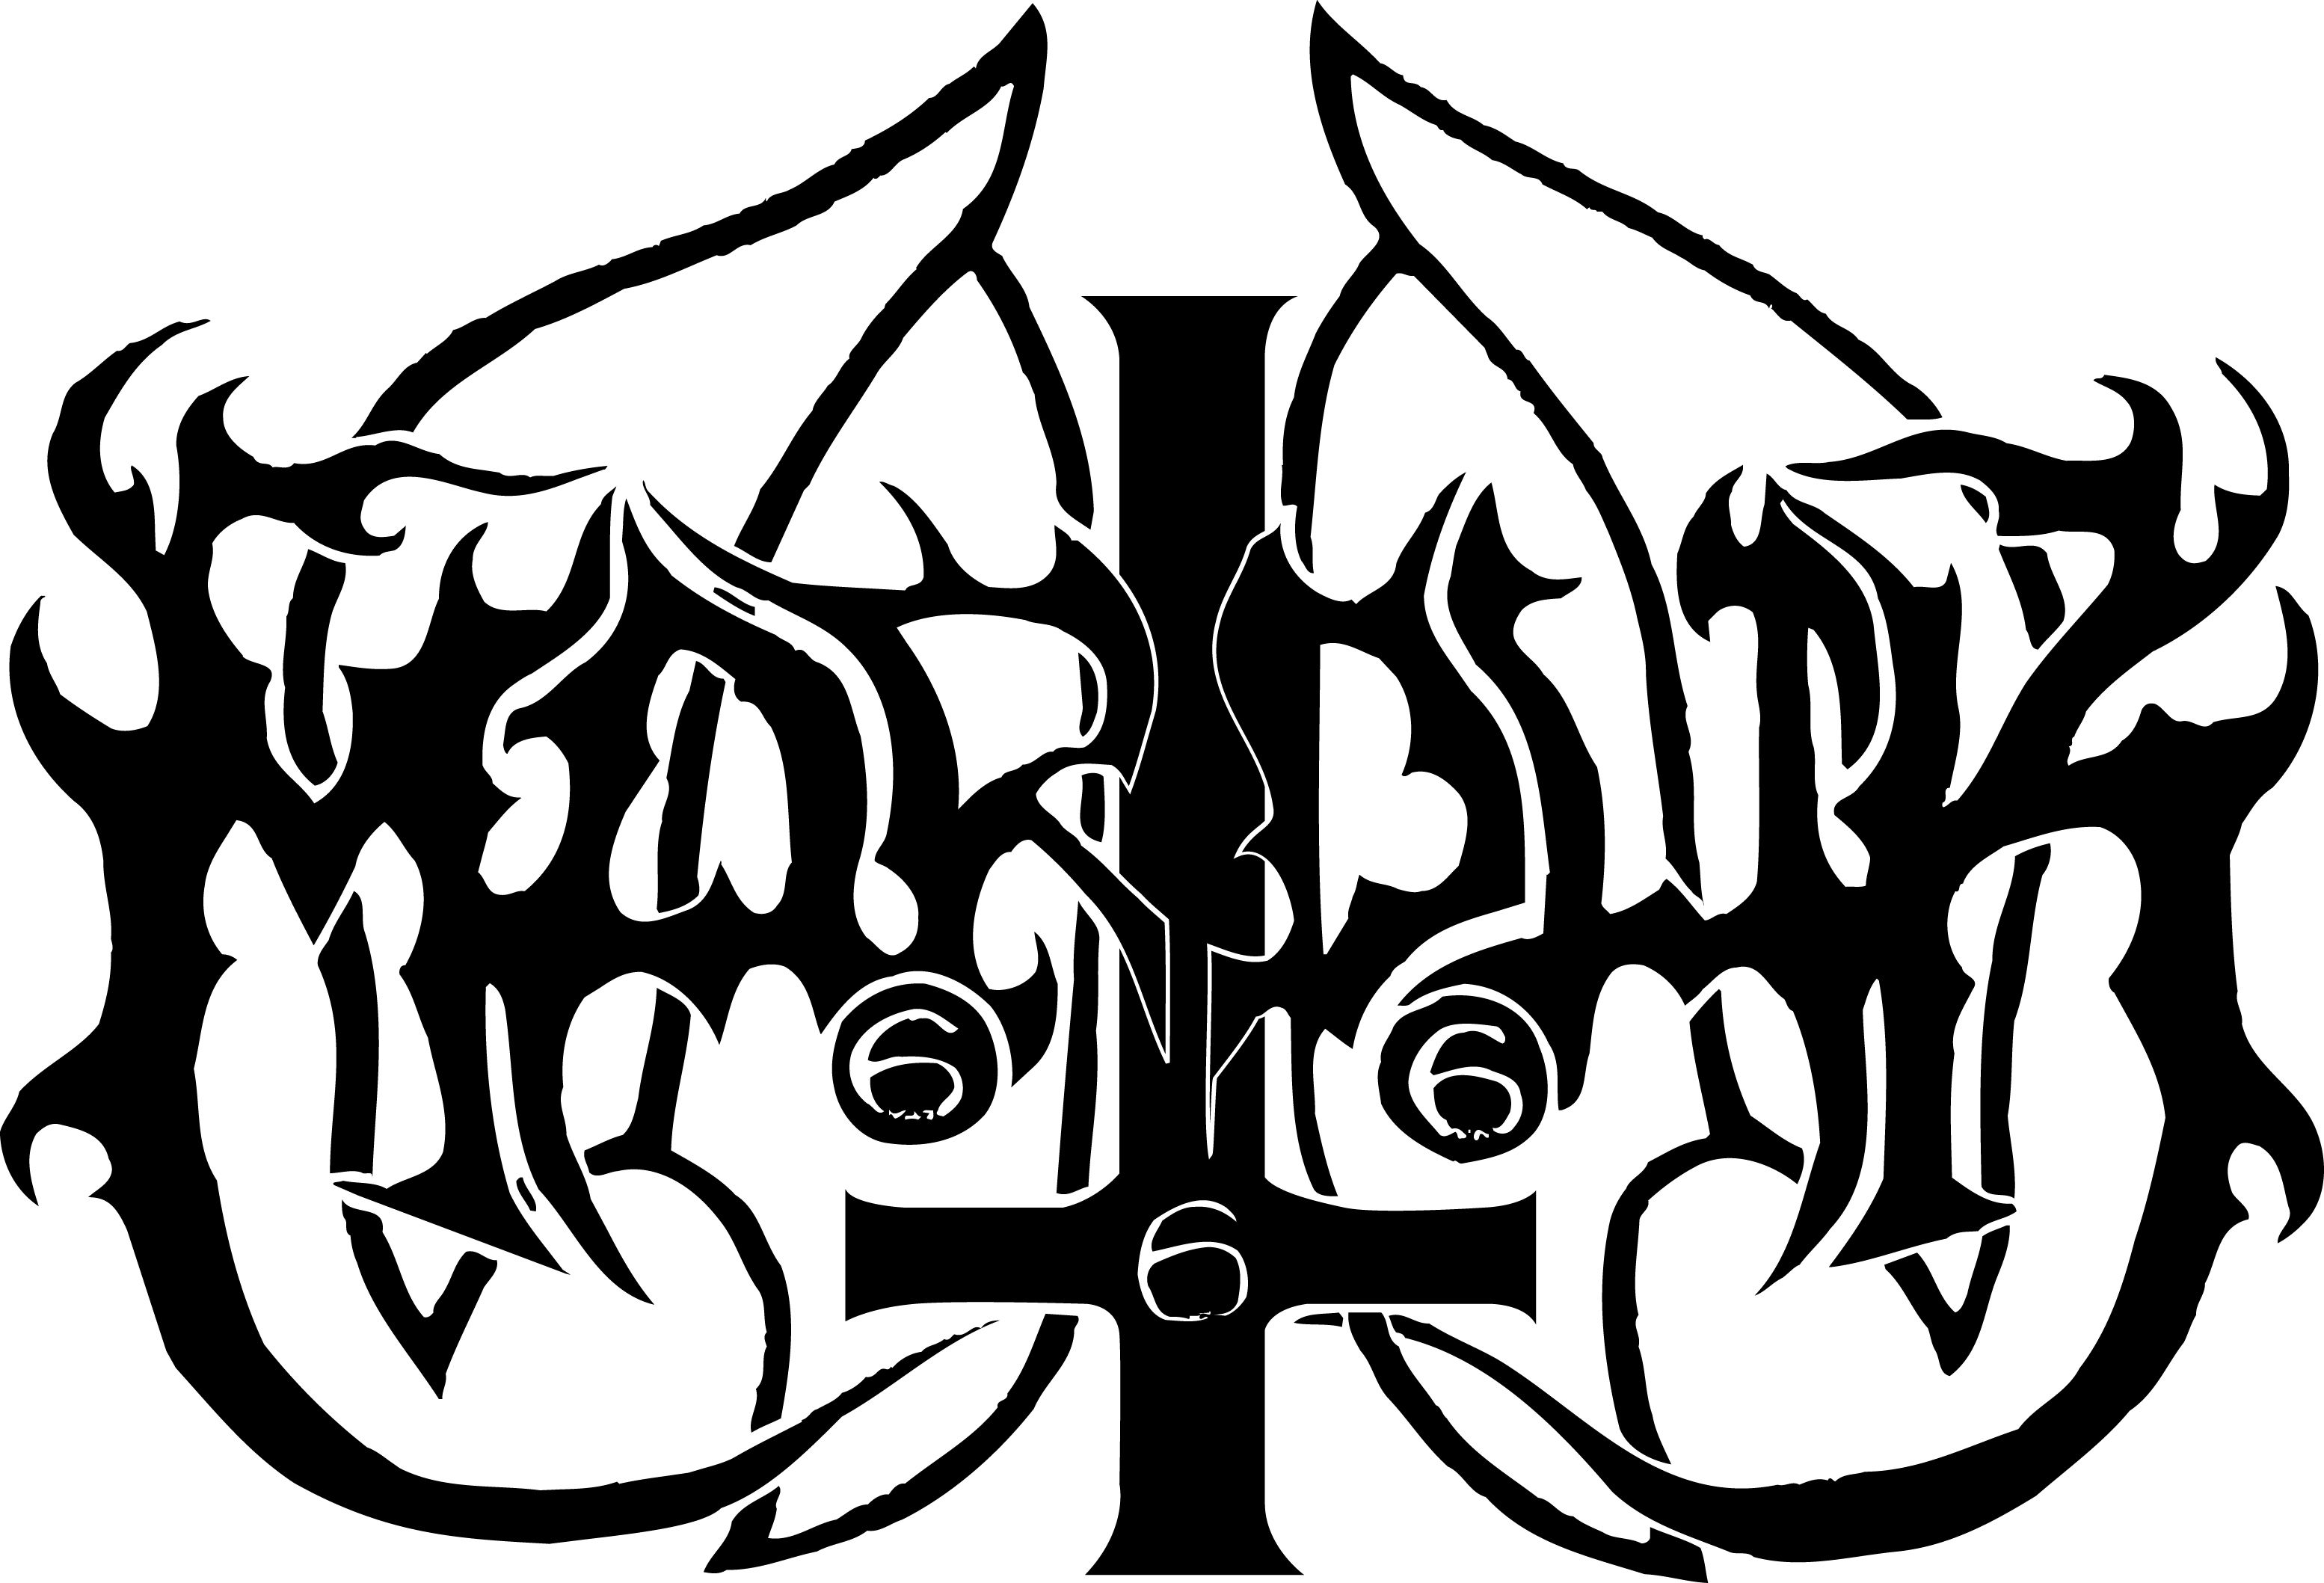 marduk band logos pinterest black metal rh pinterest com Thrash Metal Band Logos Death Metal Band Logos